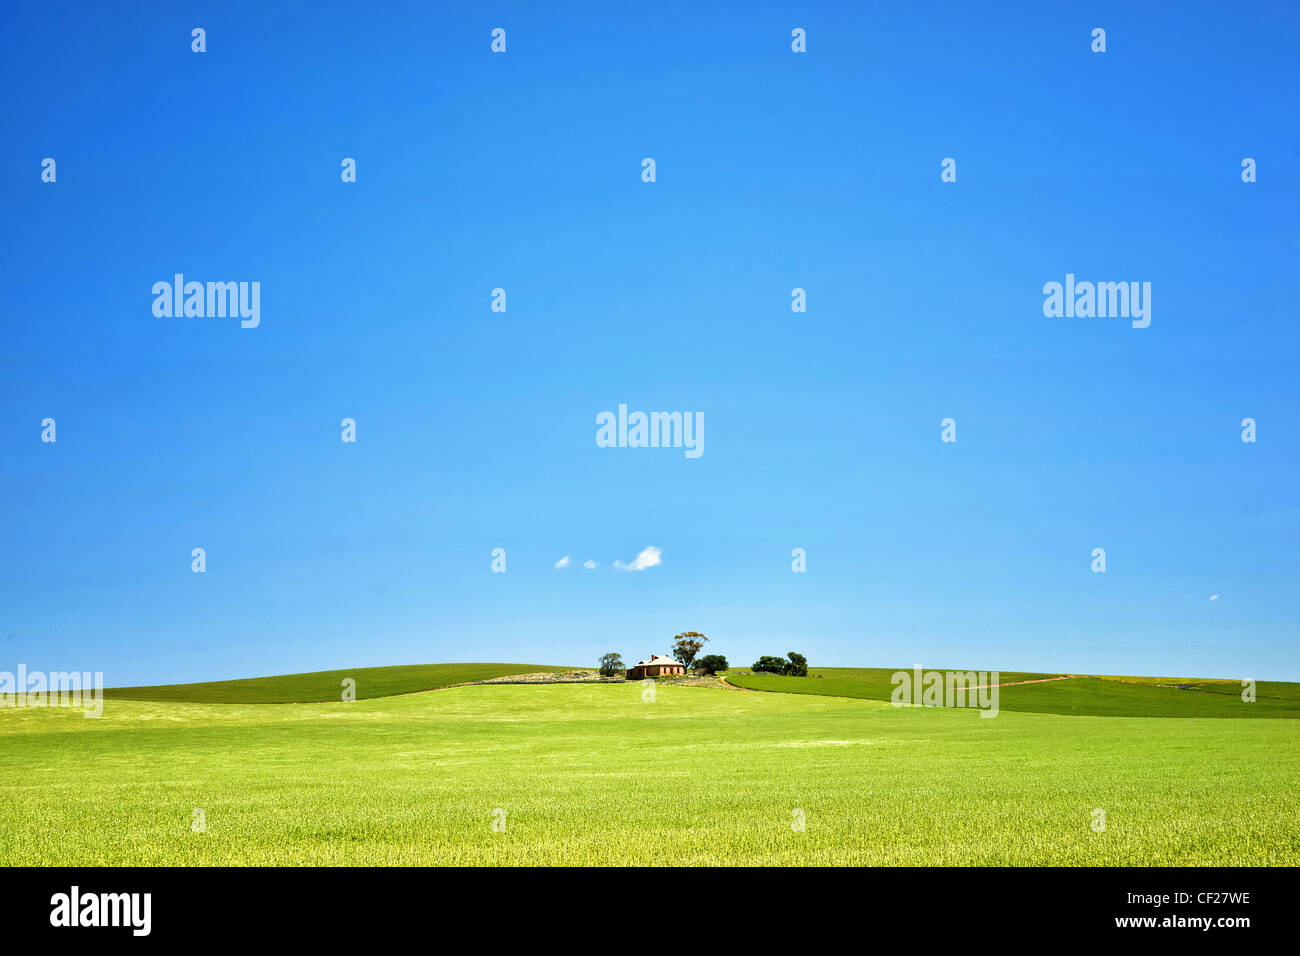 fields of wheat in the countryside at burra south australia - Stock Image